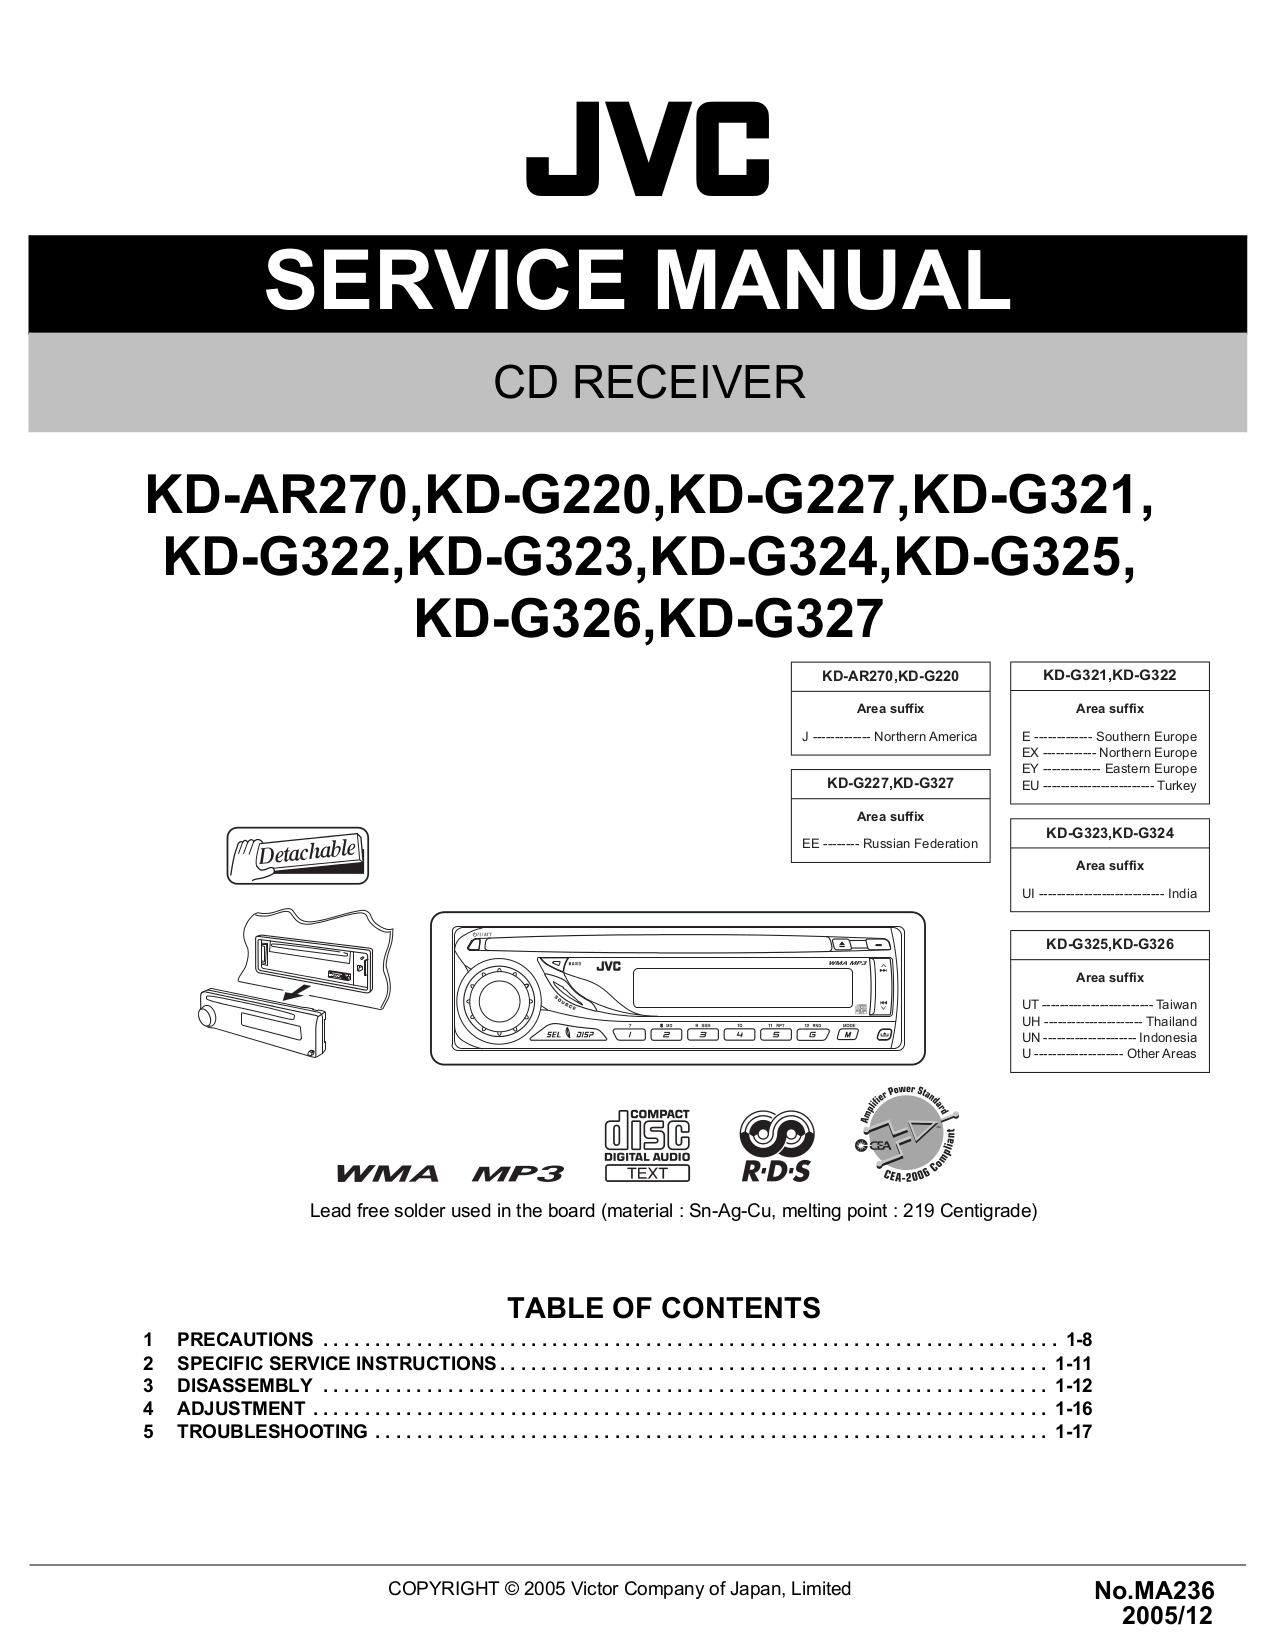 Tw 8906 Jvc Kd S39 Wiring Diagram Furthermore Jvc Kd Car Stereo Wiring Harness Wiring Diagram